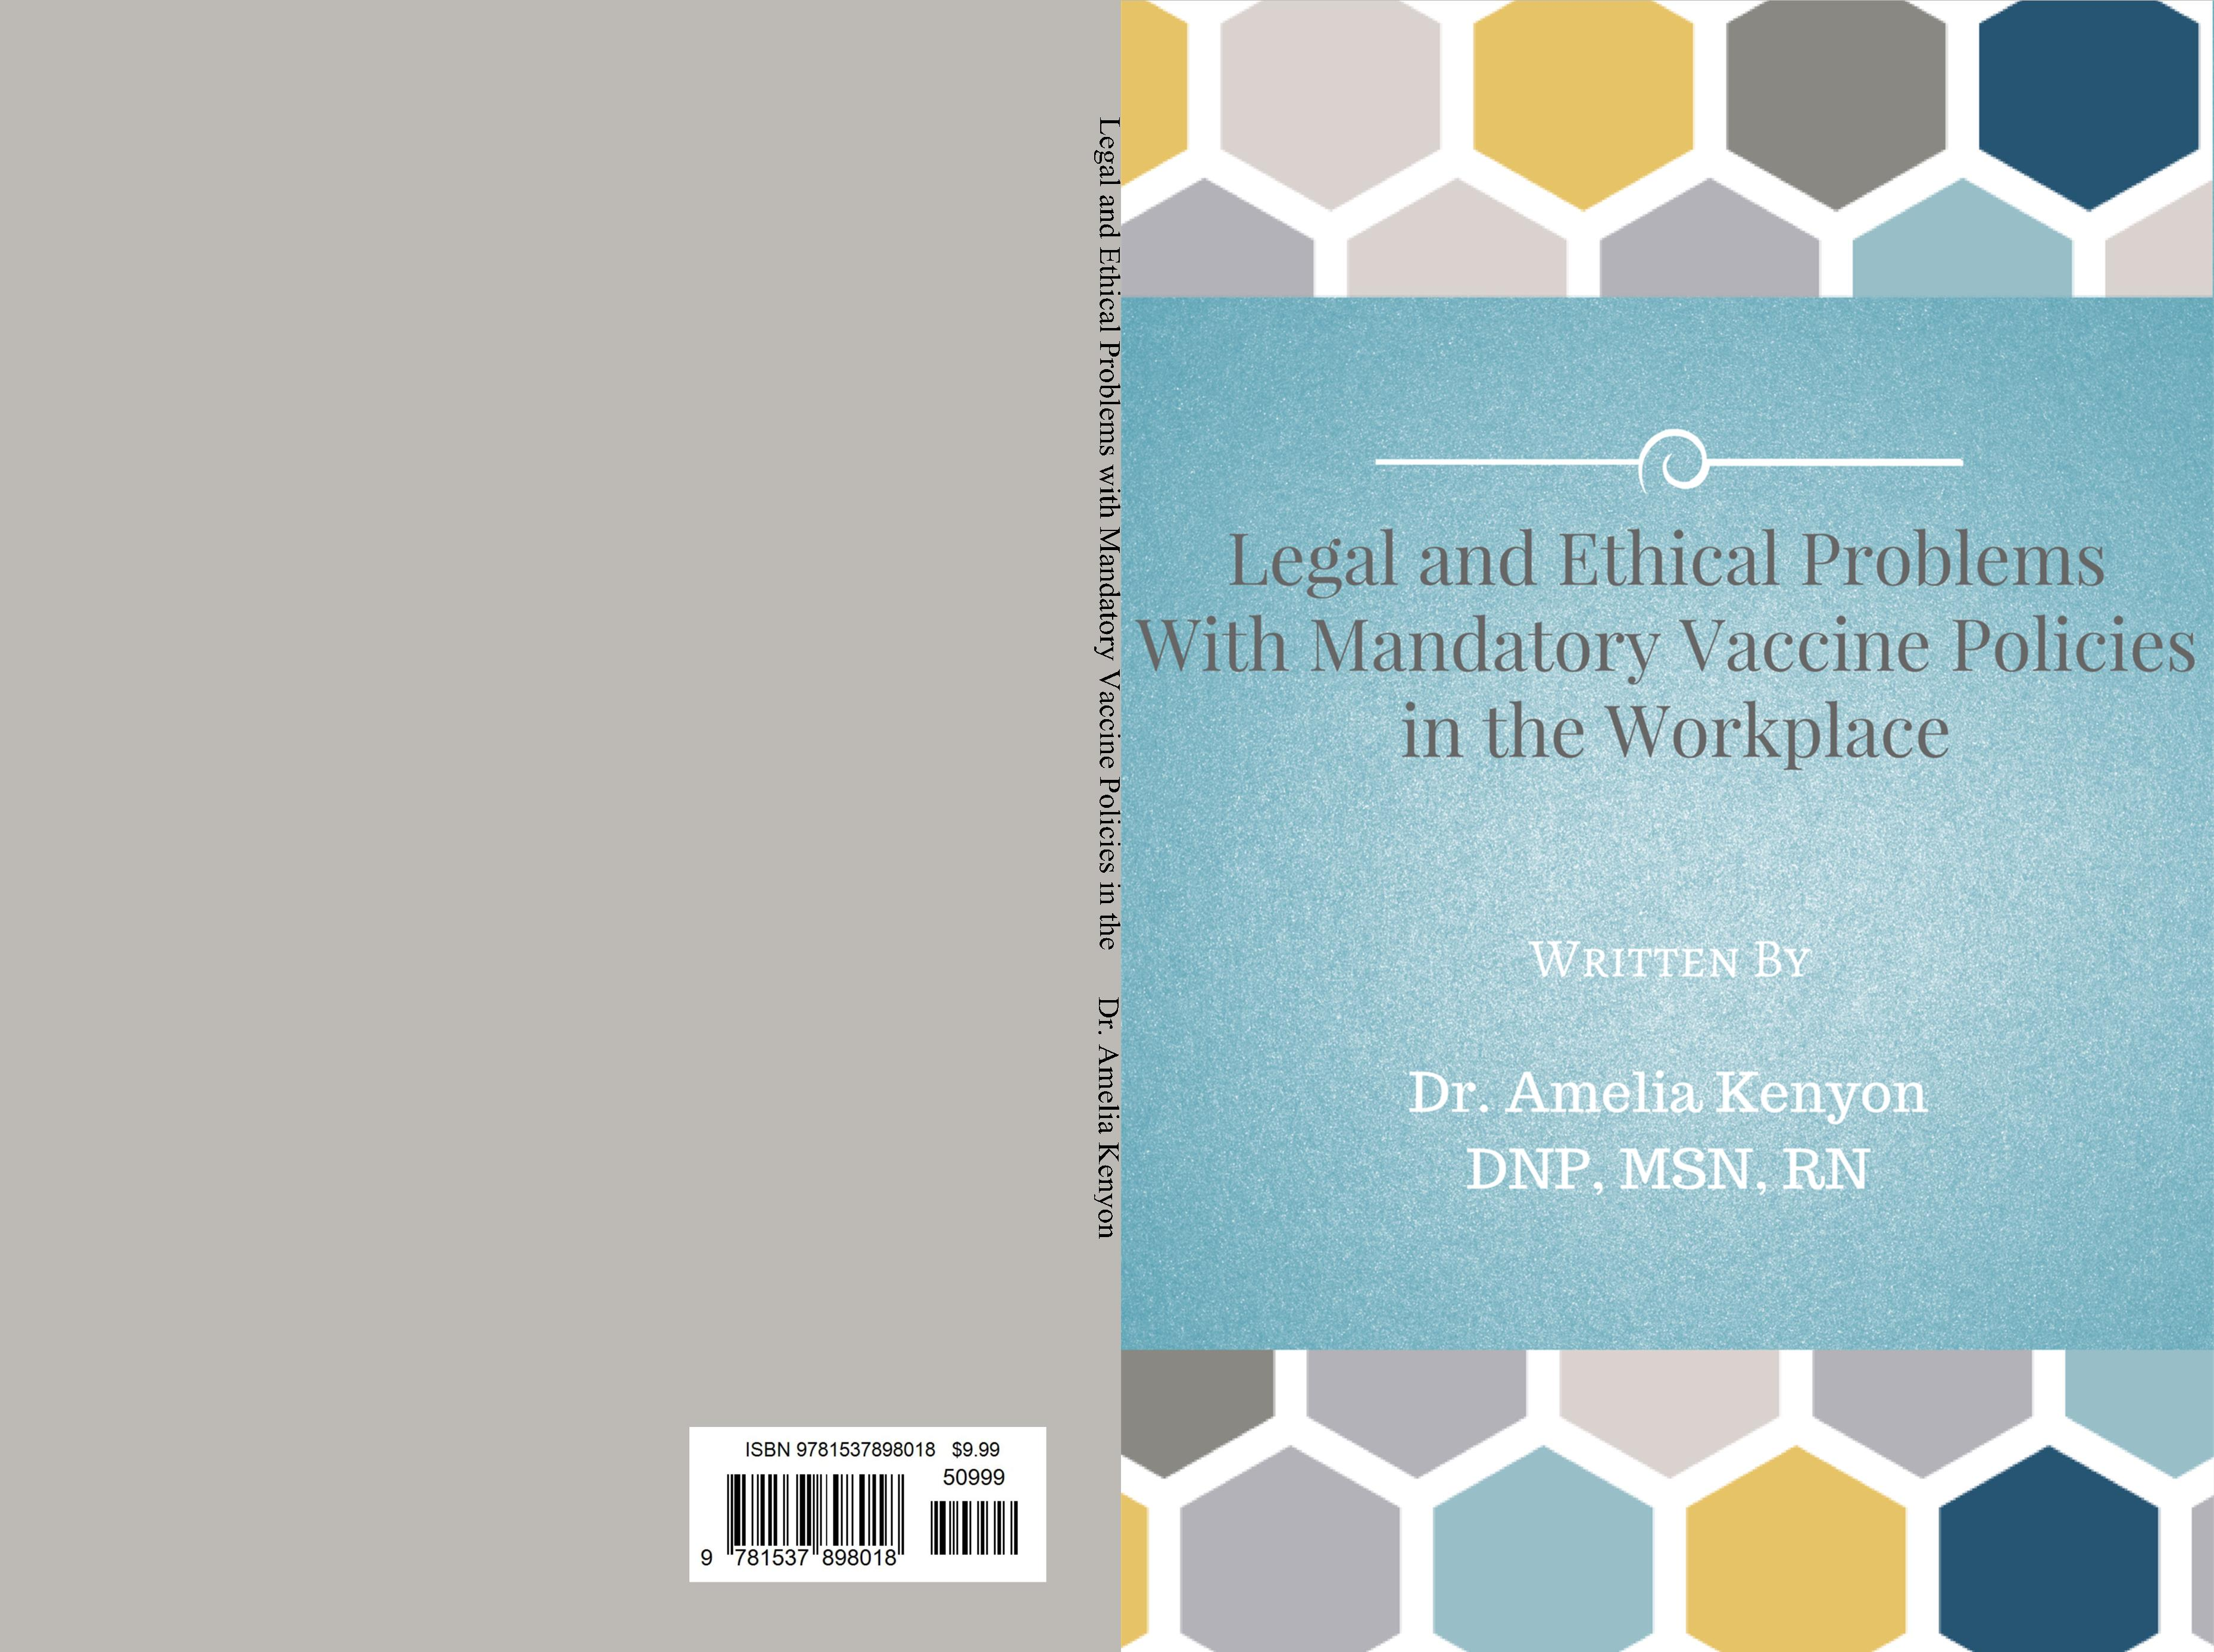 Legal and Ethical Problems with Mandatory Vaccine Policies in the Workplace cover image